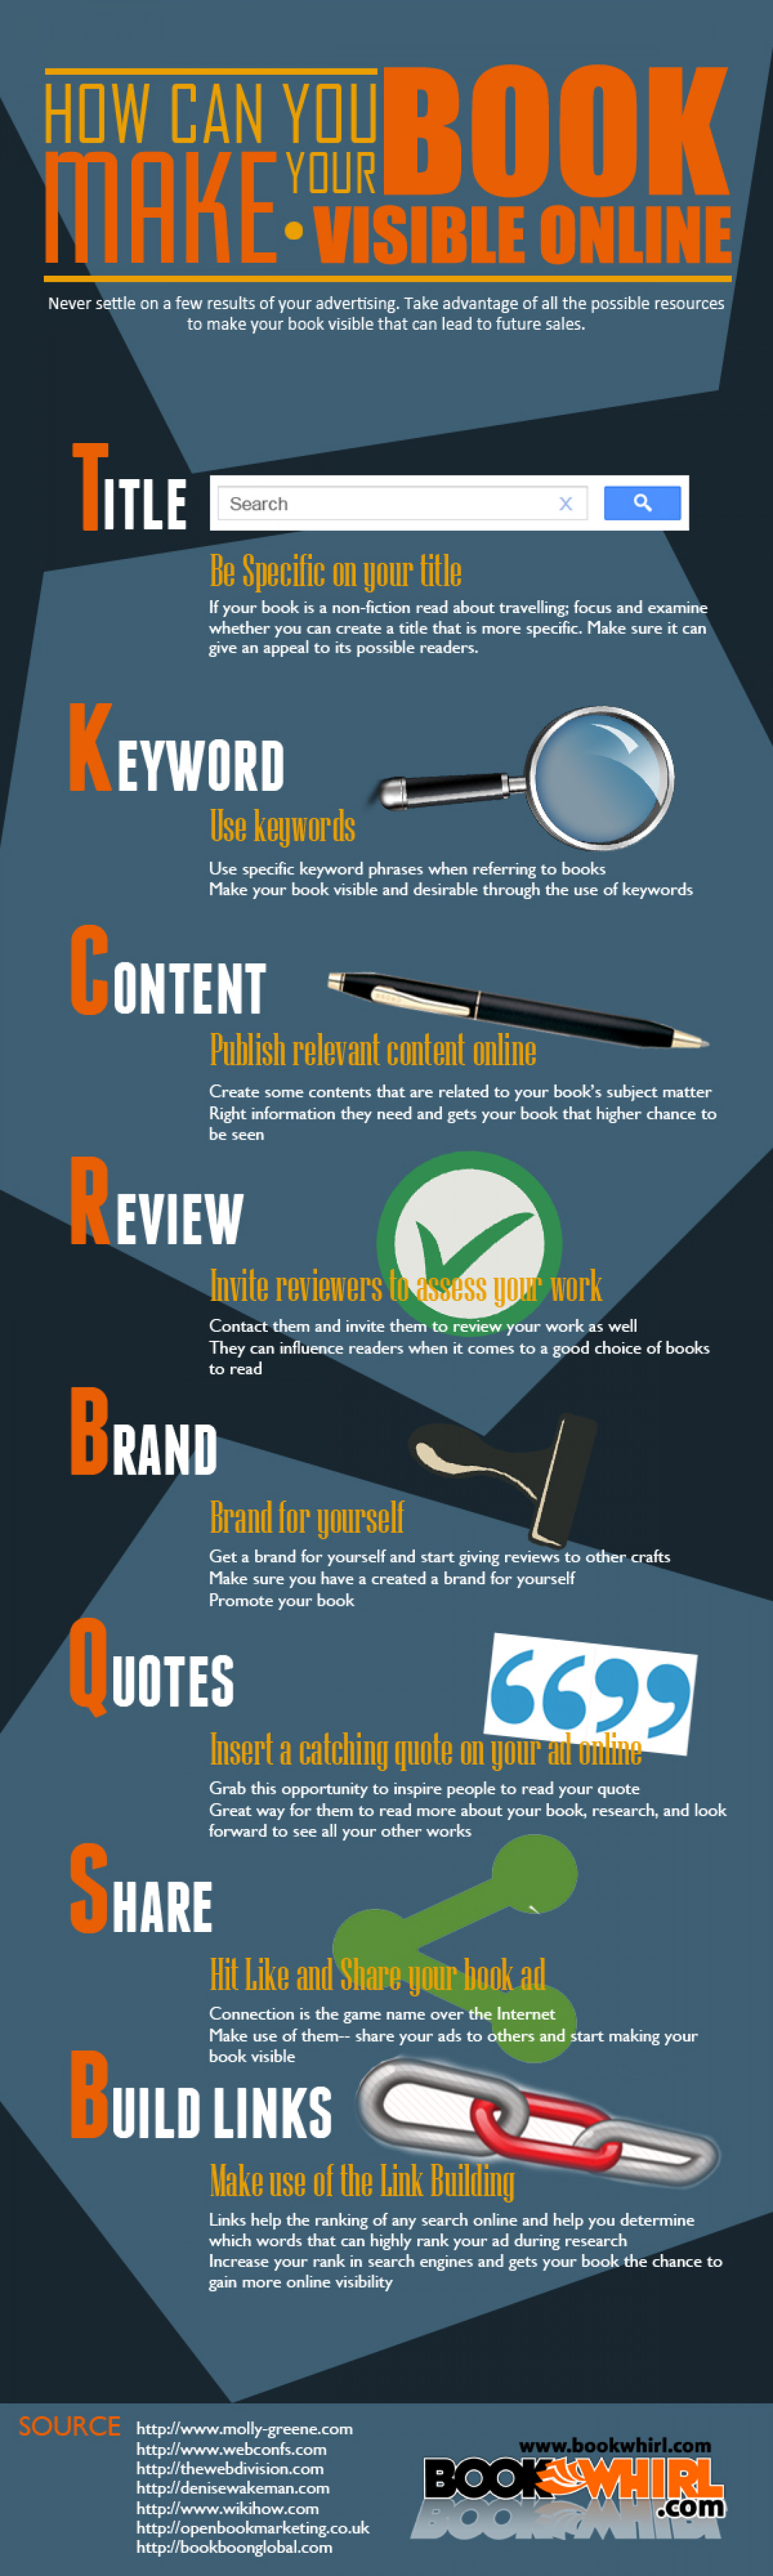 How Can You Make Your Book Visible Online Infographic